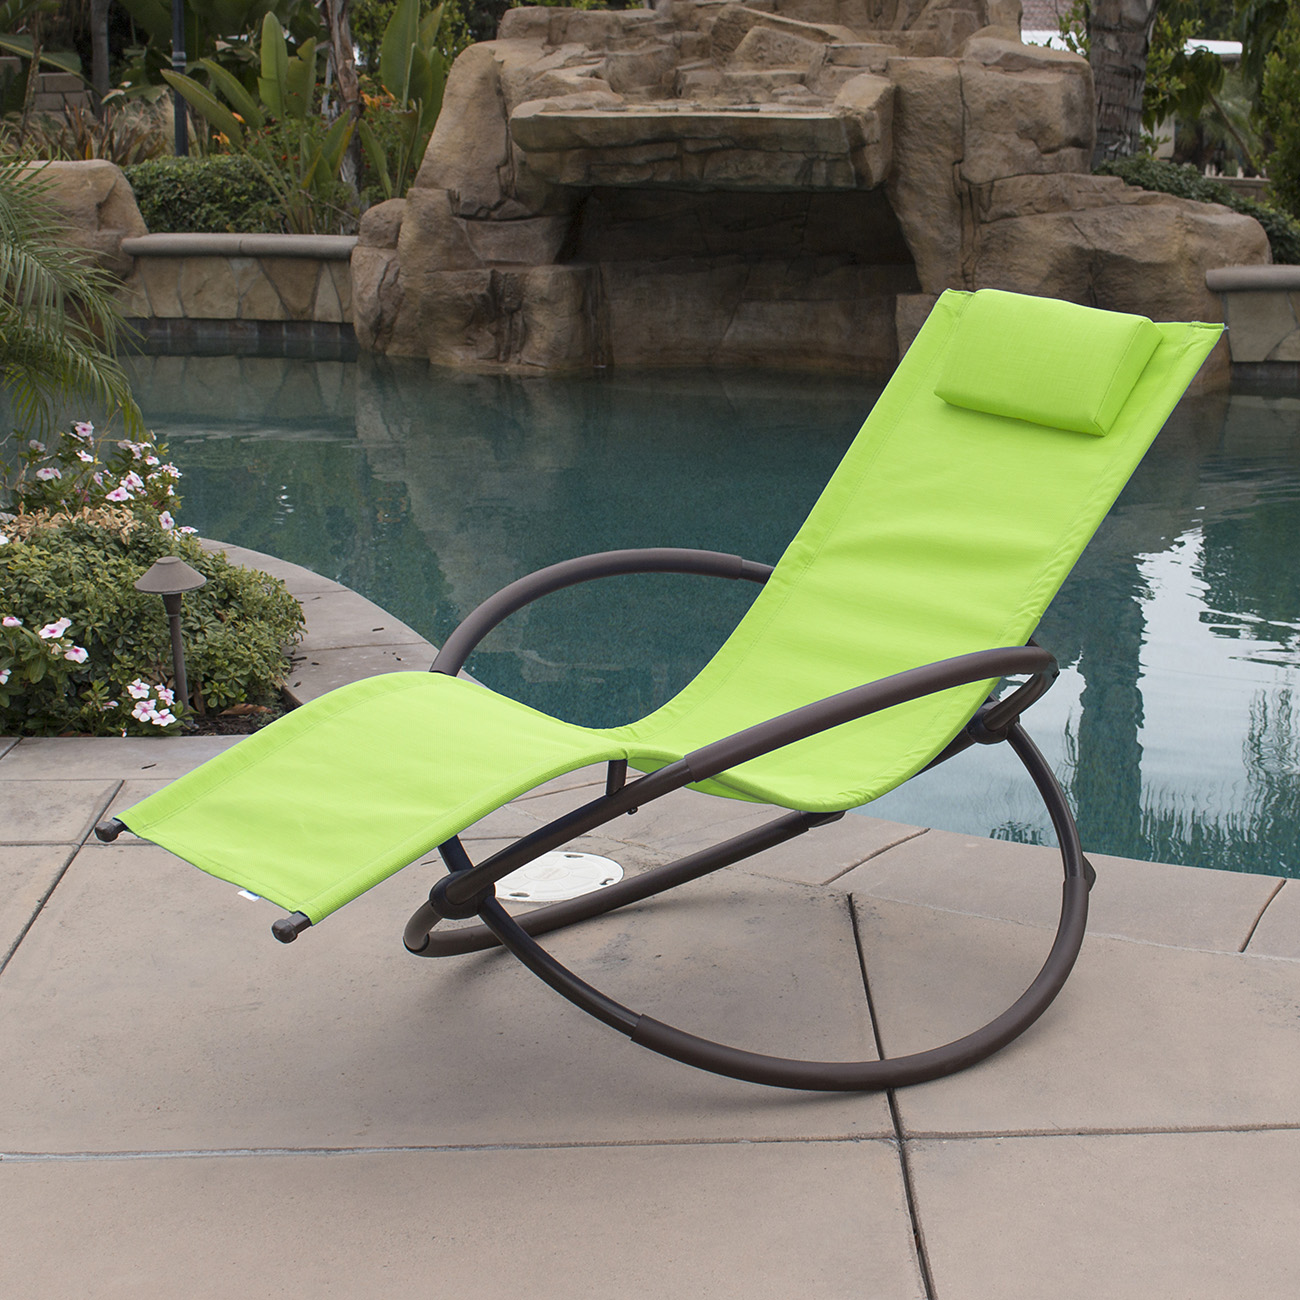 7 color orbital zero anti gravity lounge chair beach pool patio